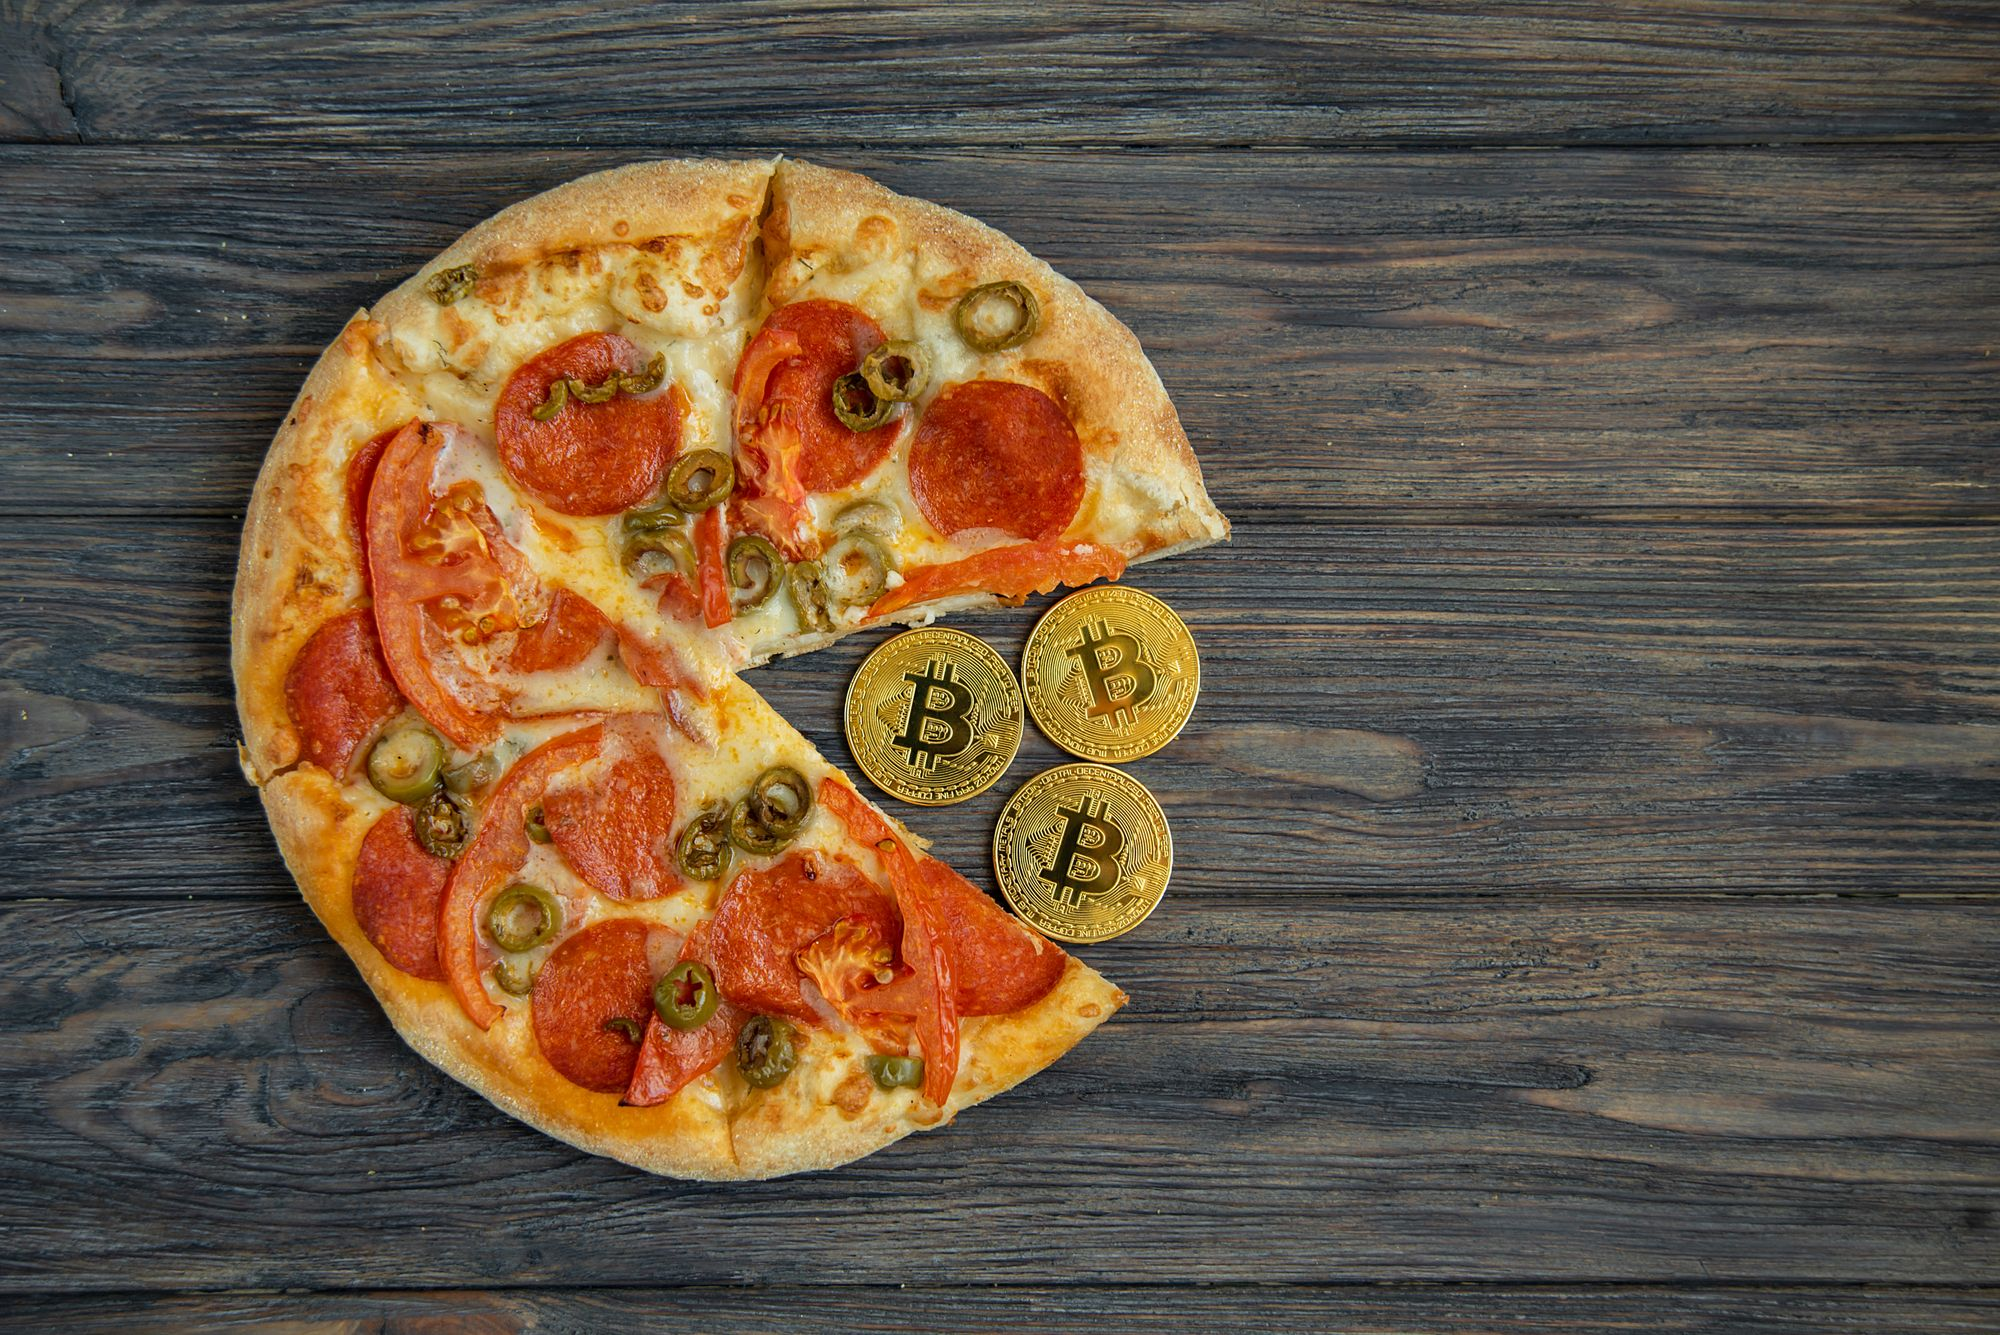 Meet the man who spent millions worth of bitcoin on pizza - 60 Minutes - CBS News